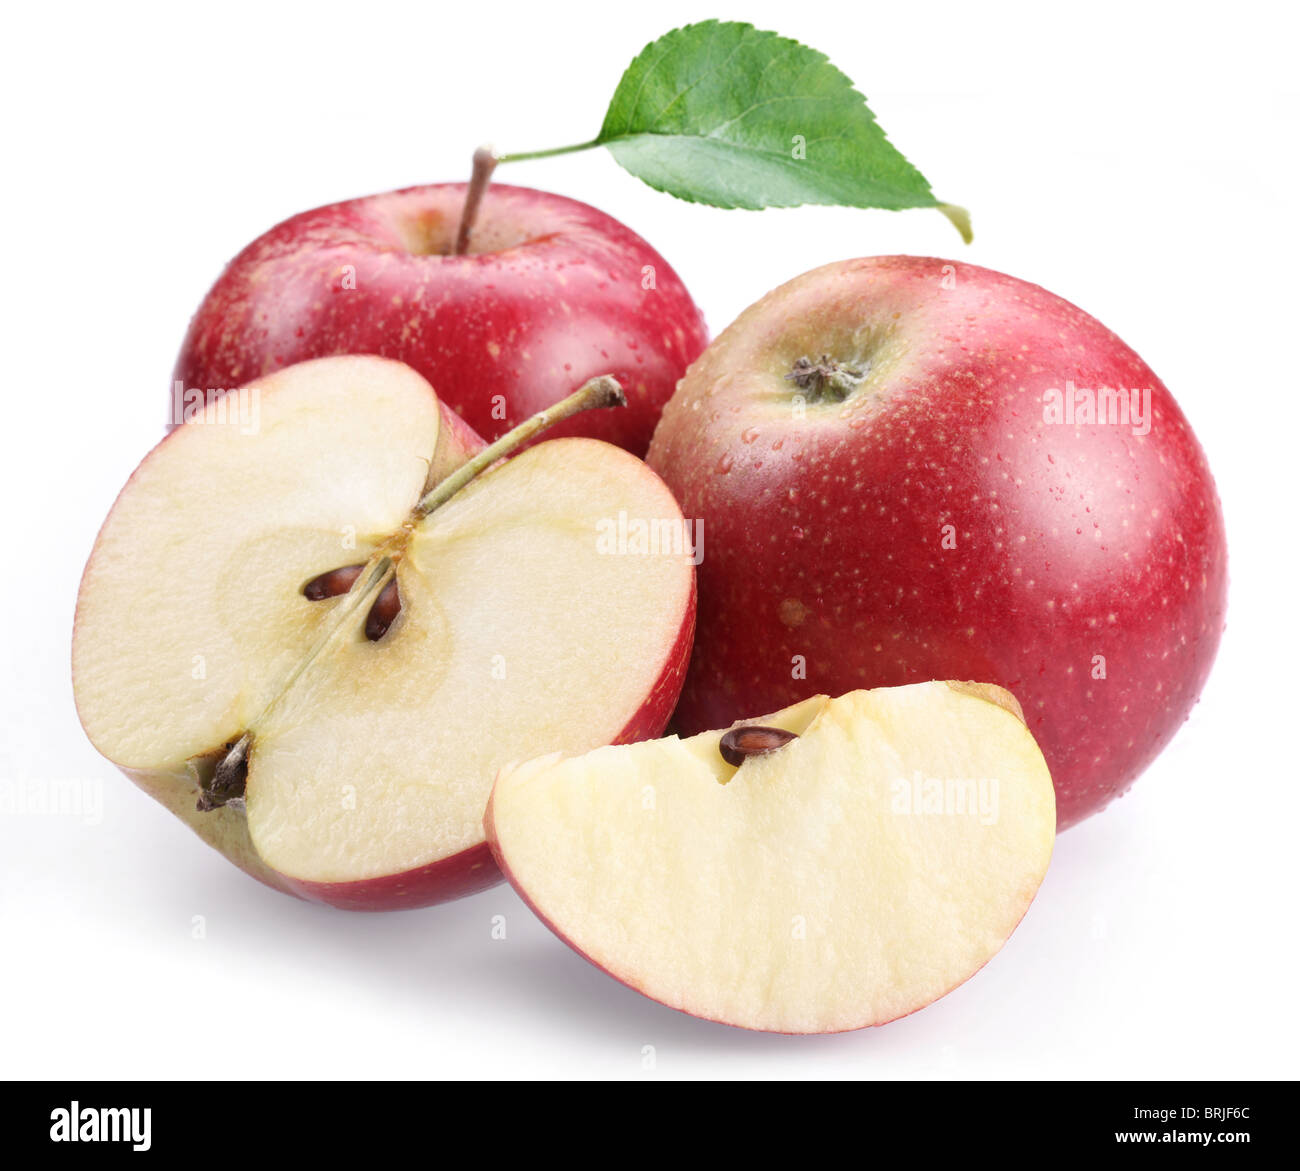 Two red apple with leaf and apple slices isolated on a white background. - Stock Image